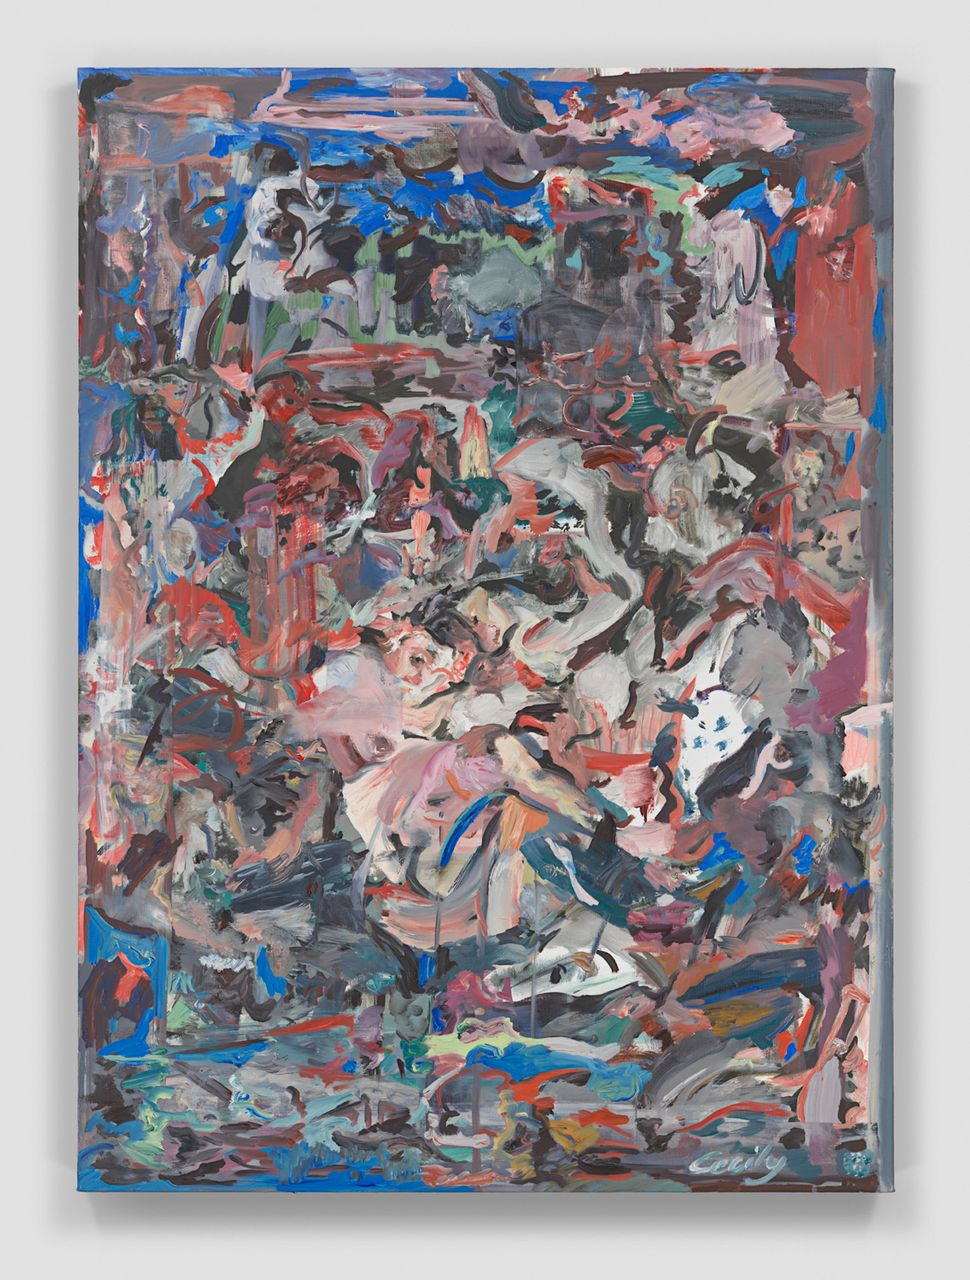 """Cecily Brown Stuck in the Middle with You, 2014-2015 Oil on linen 43 x 31"""" $350,000"""